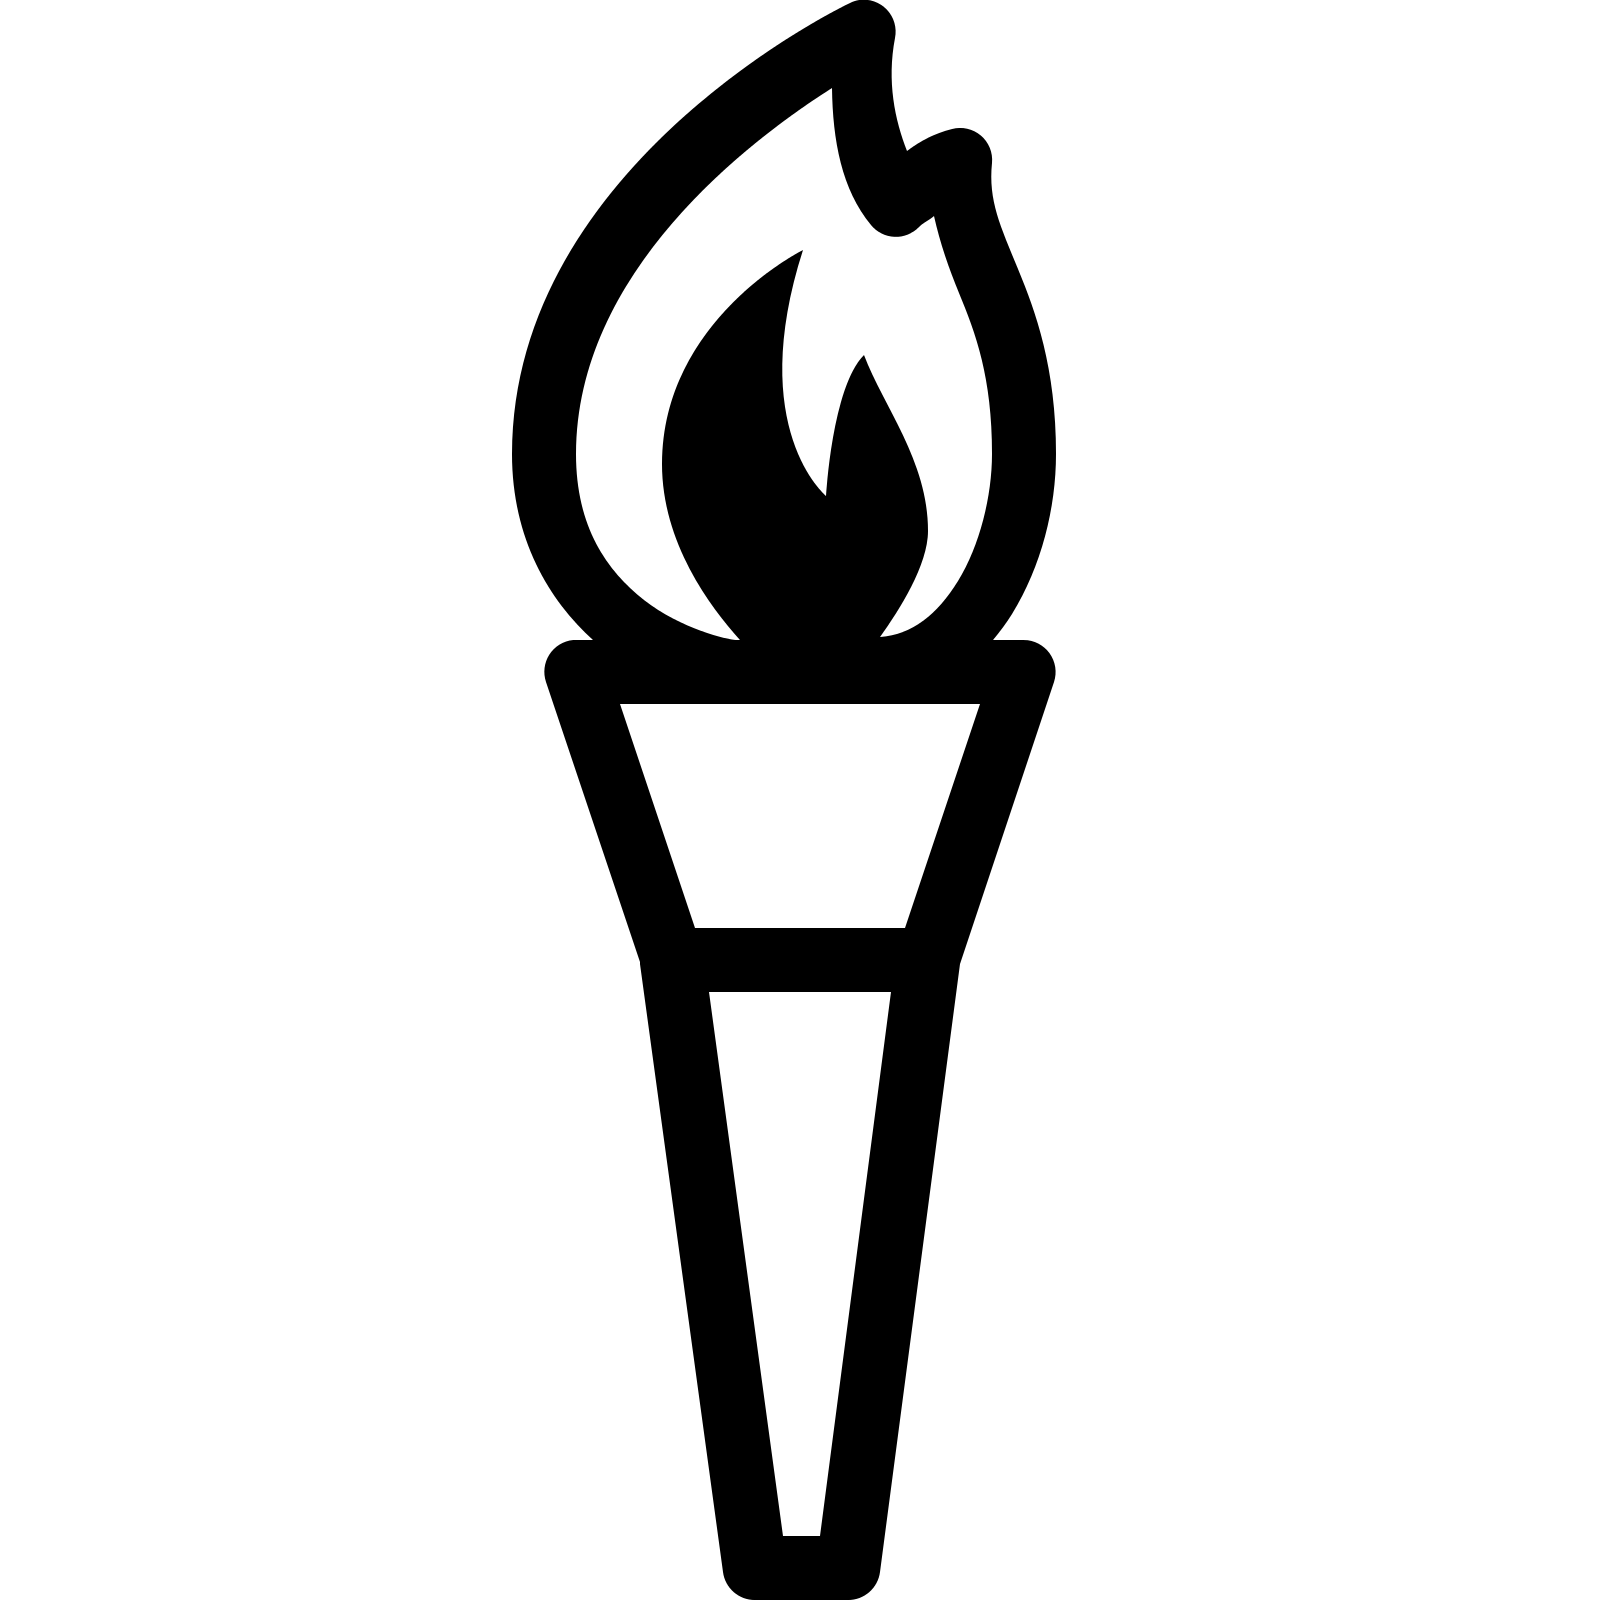 Olympic clipart torch book, Olympic torch book Transparent.